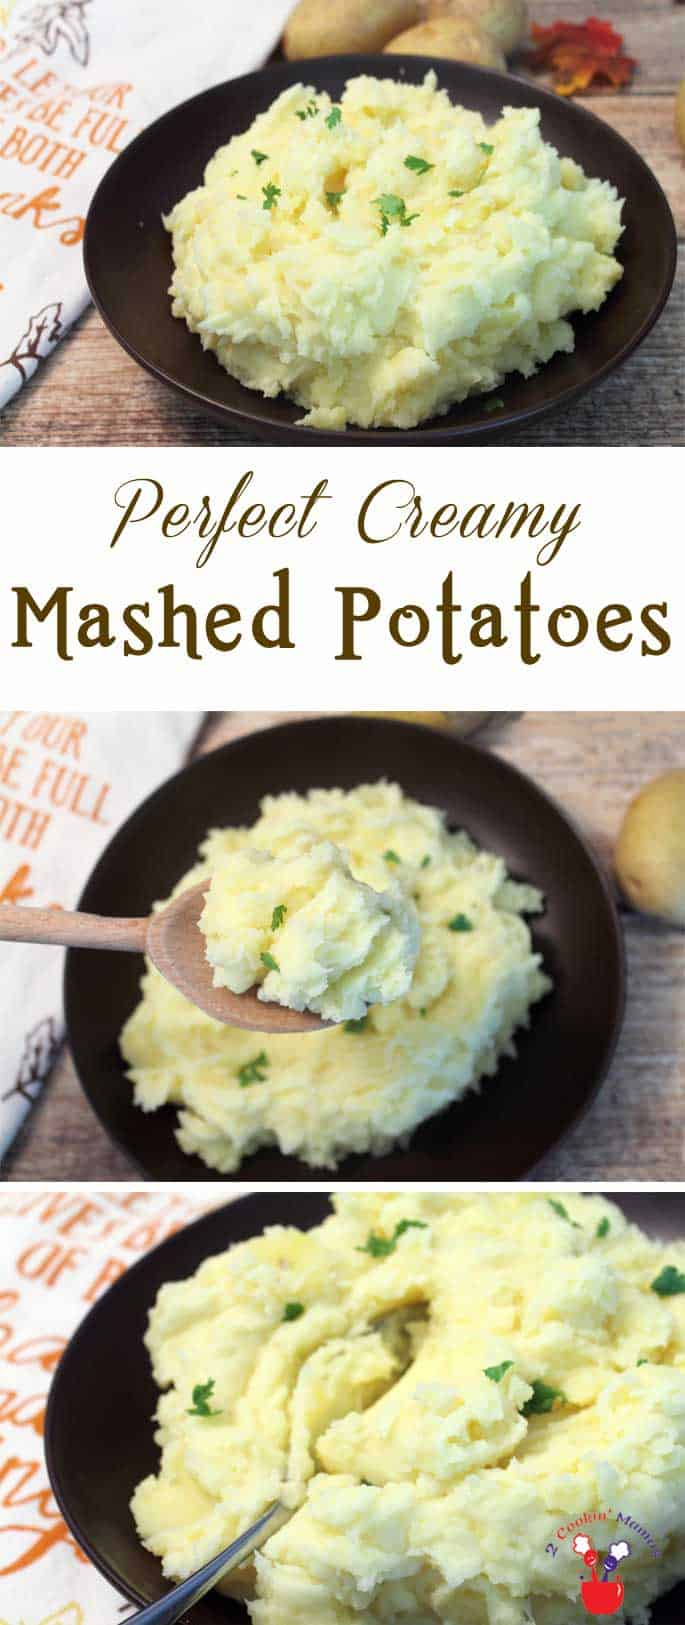 These creamy, buttery perfect mashed potatoes will come out delicious every time. Make them the crowning glory on your  everyday dinner table or a special occasion likeThanksgiving. #potatoes #mashepotatoes #sidedish #Thanksgivingside